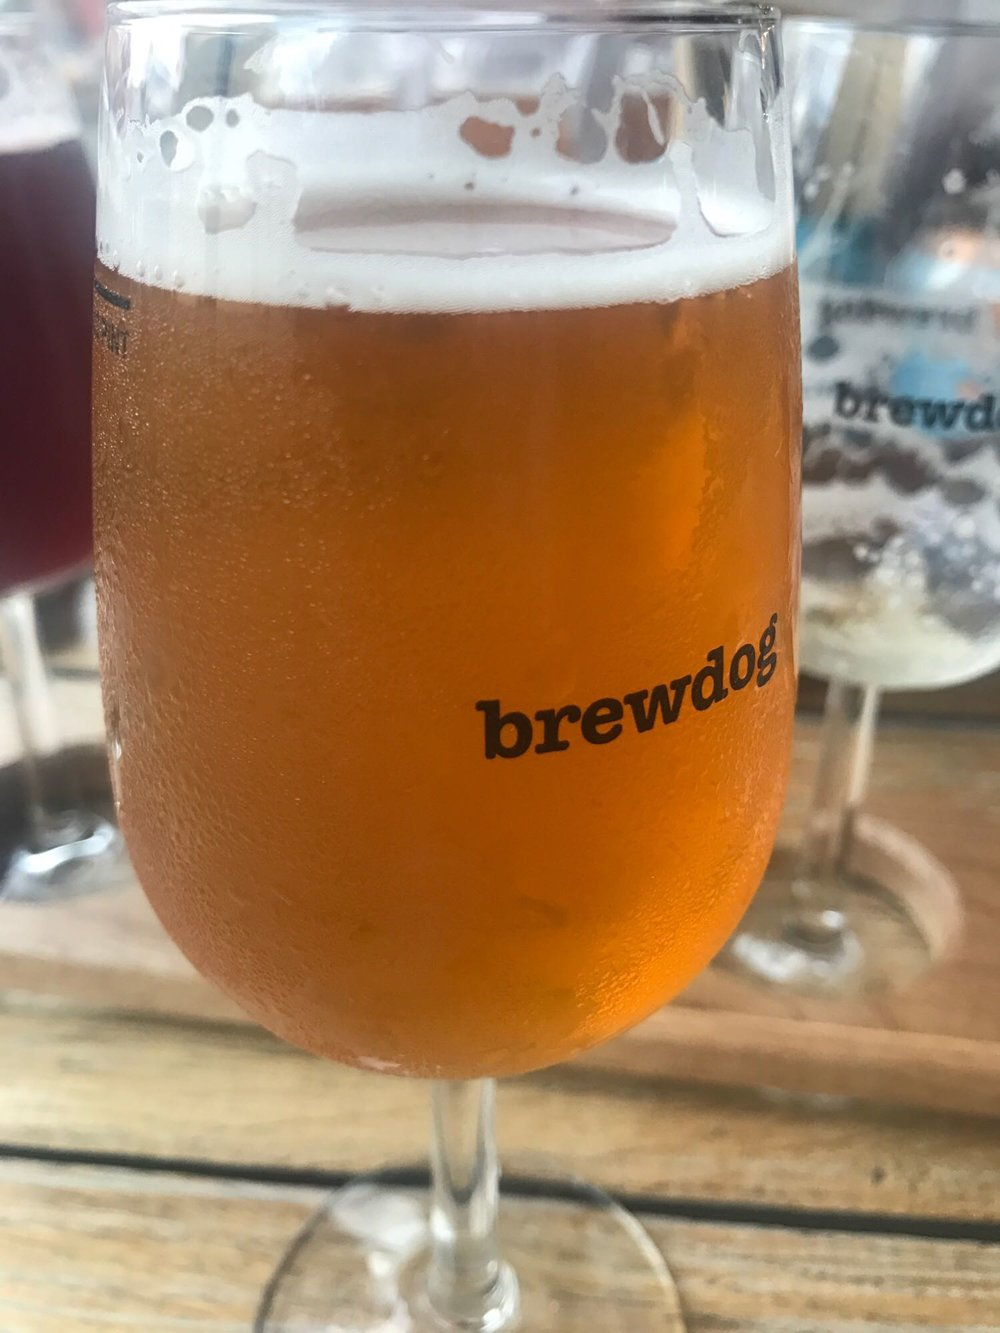 Djuicy - Double IPA 8.5% // To Øl - Bucking the trend this time, but only ever so slightly, comes one of the standout beers I had as part of To Øl's tap takeover at BrewDog Shepherd's Bush. Another superb DIPA - I think this is the first of this style I've had from these Danish heroes and they've again shown they have mastered yet another type of beer and reinforced why they are one of my favourite breweries.This was amazingly refreshing and I sank it in record time, only wishing it wasn't so expensive so I could buy pints of this wonderful alcoholic juice.